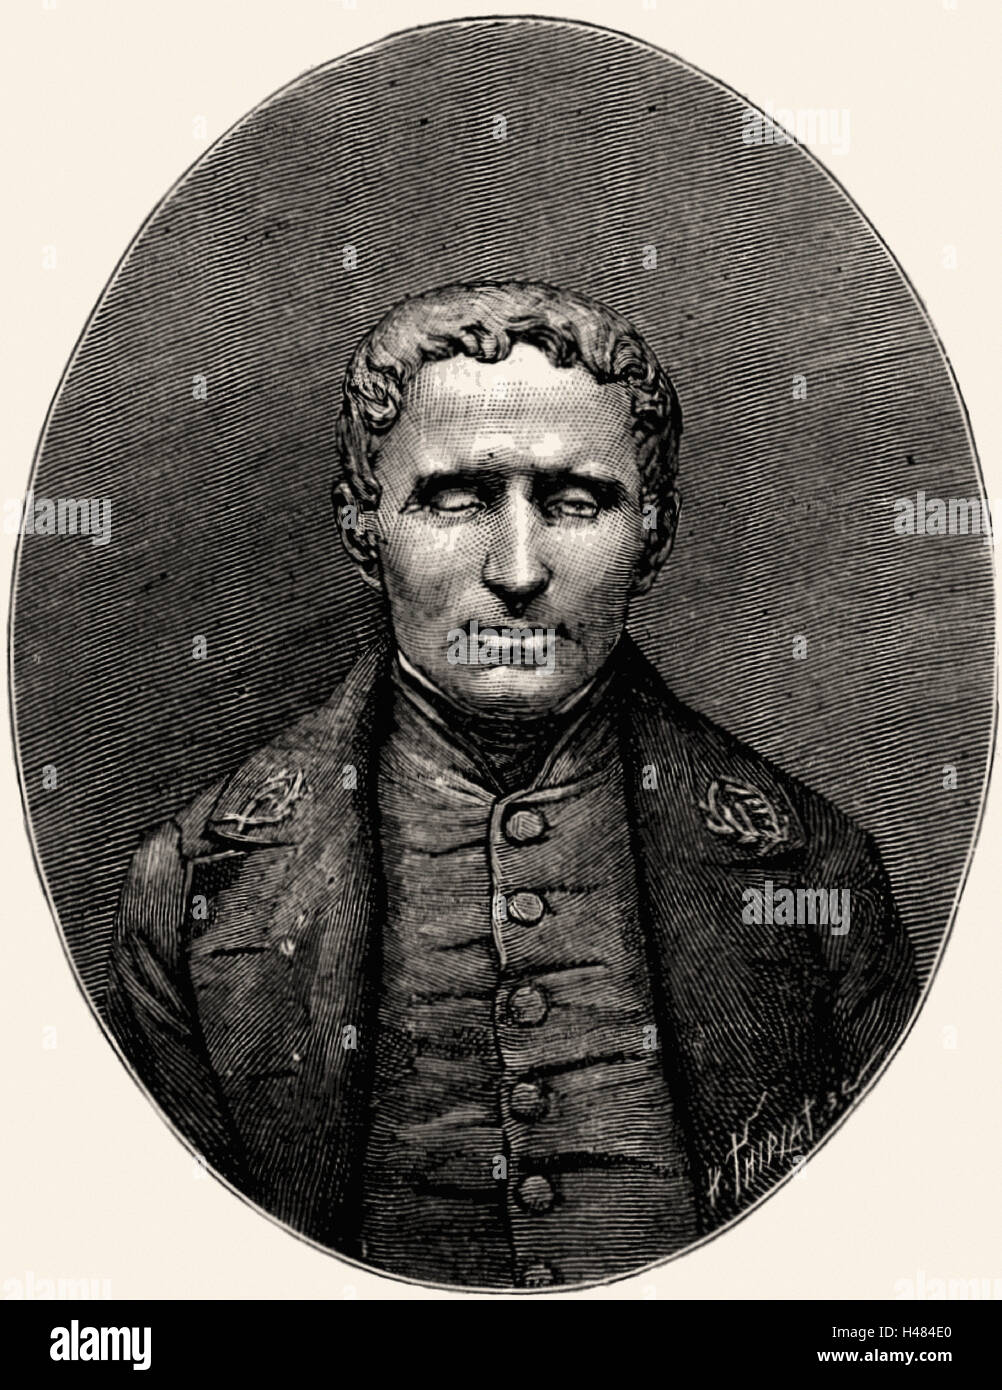 Louis Braille (1809-1852) French educationalist and inventor of a system of reading and writing for the blind - Stock Image